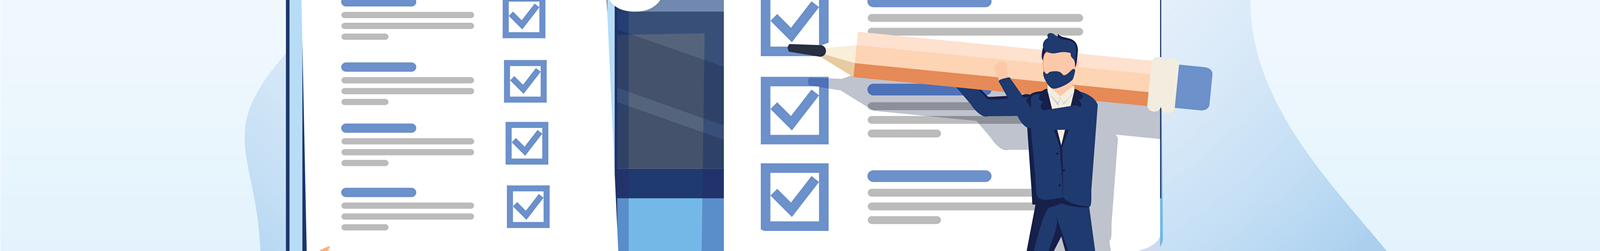 complete seo audit checklist of items to look for